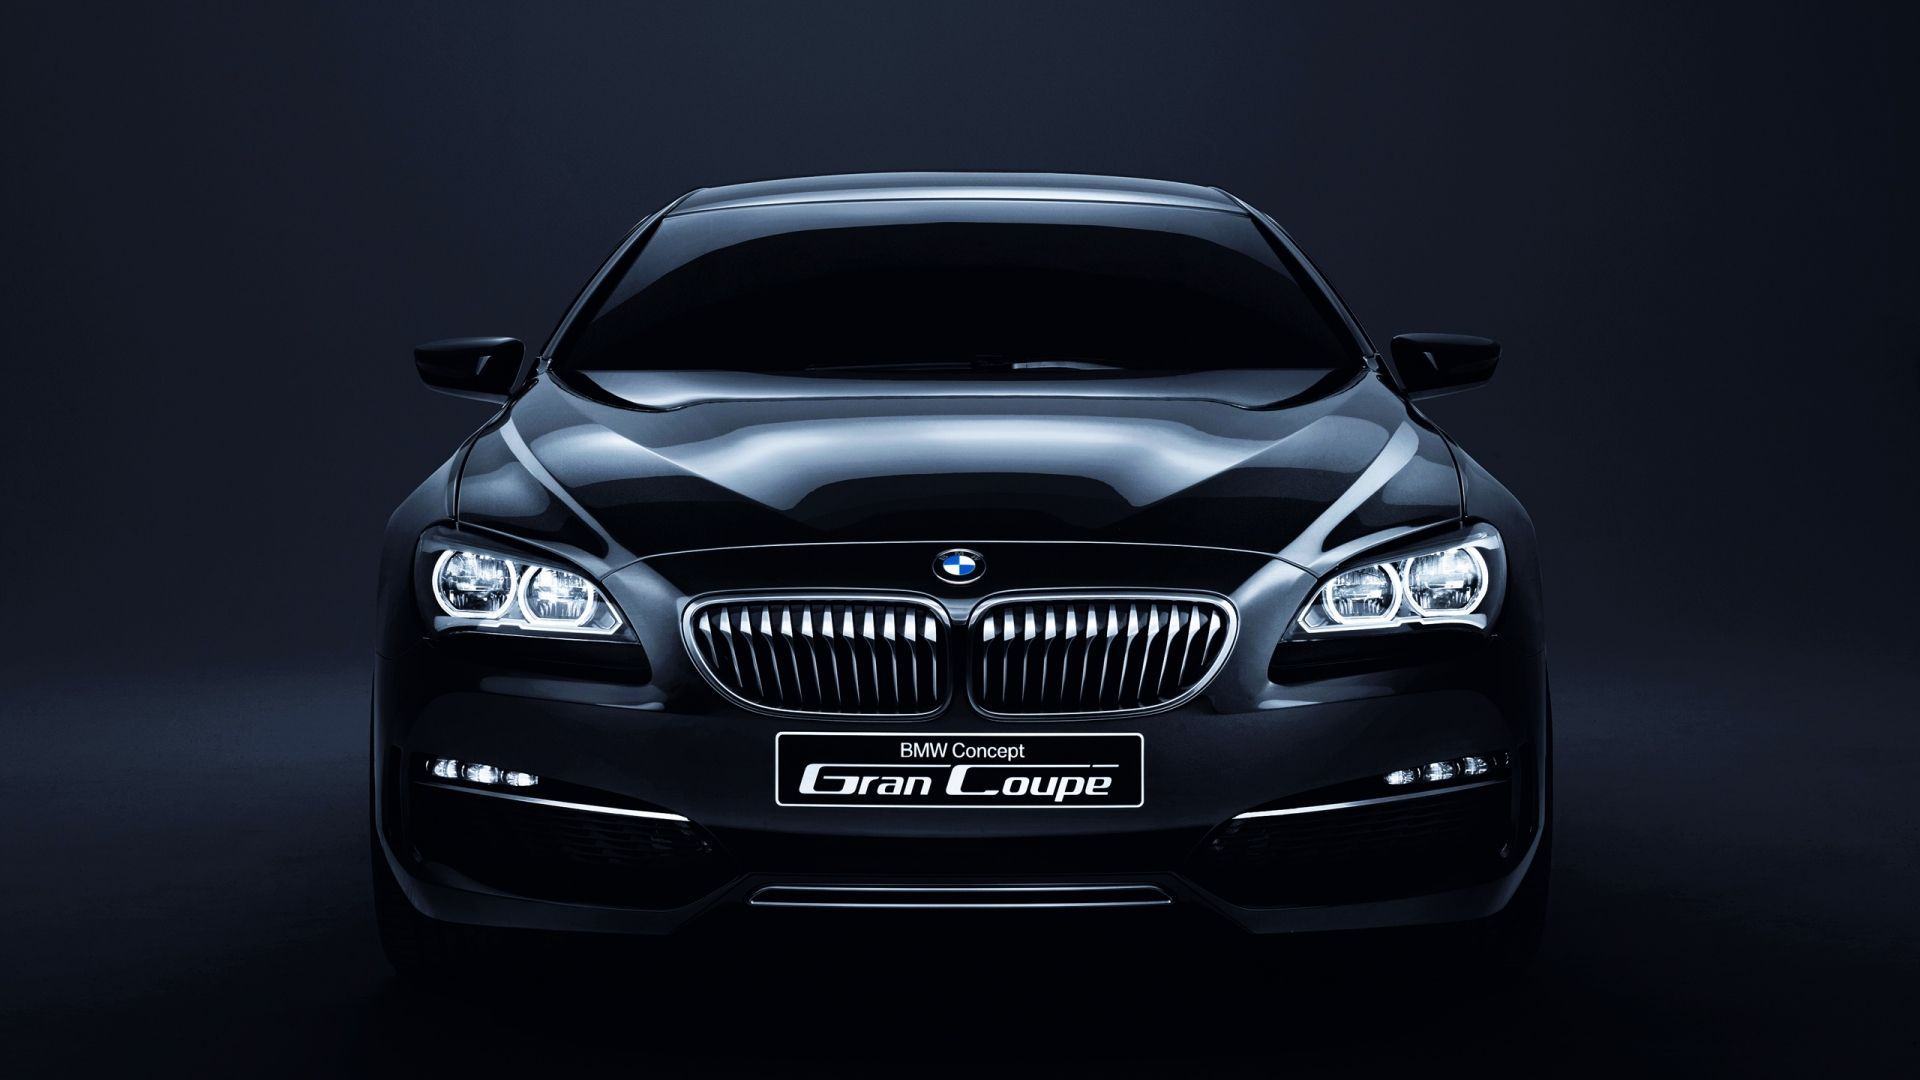 Tons of awesome bmw desktop wallpapers to download for free. Hd Bmw Car Wallpapers 1920x1080